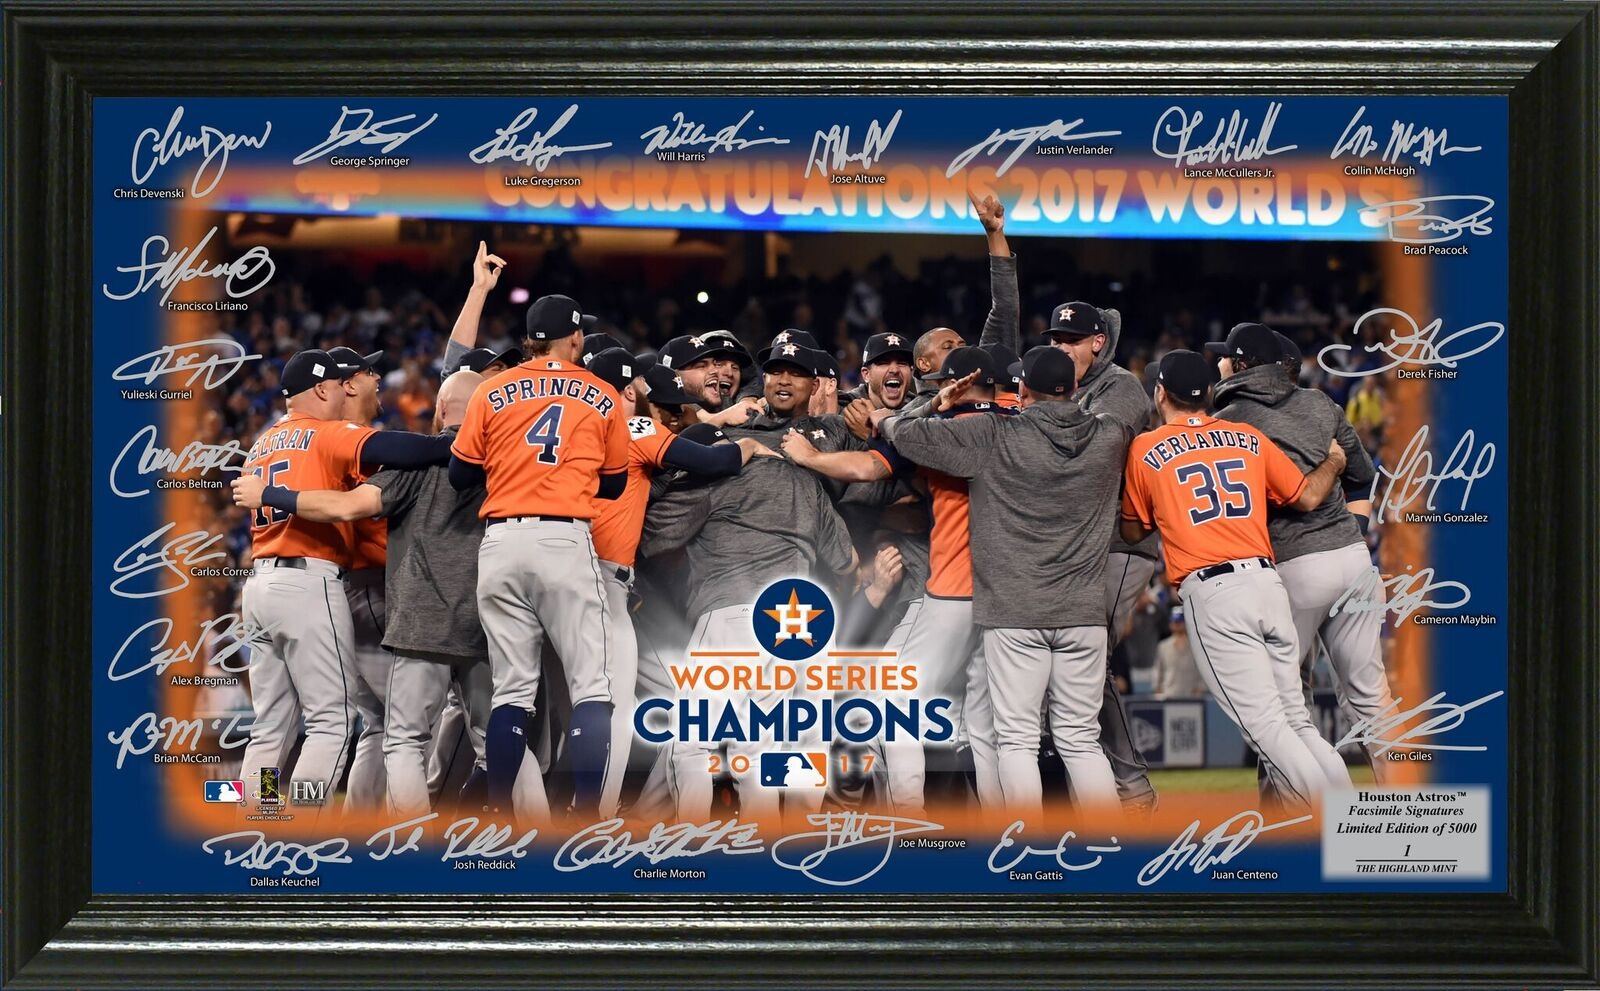 Houston Astros 2017 World Series Champions Celebration Signature Field Photo